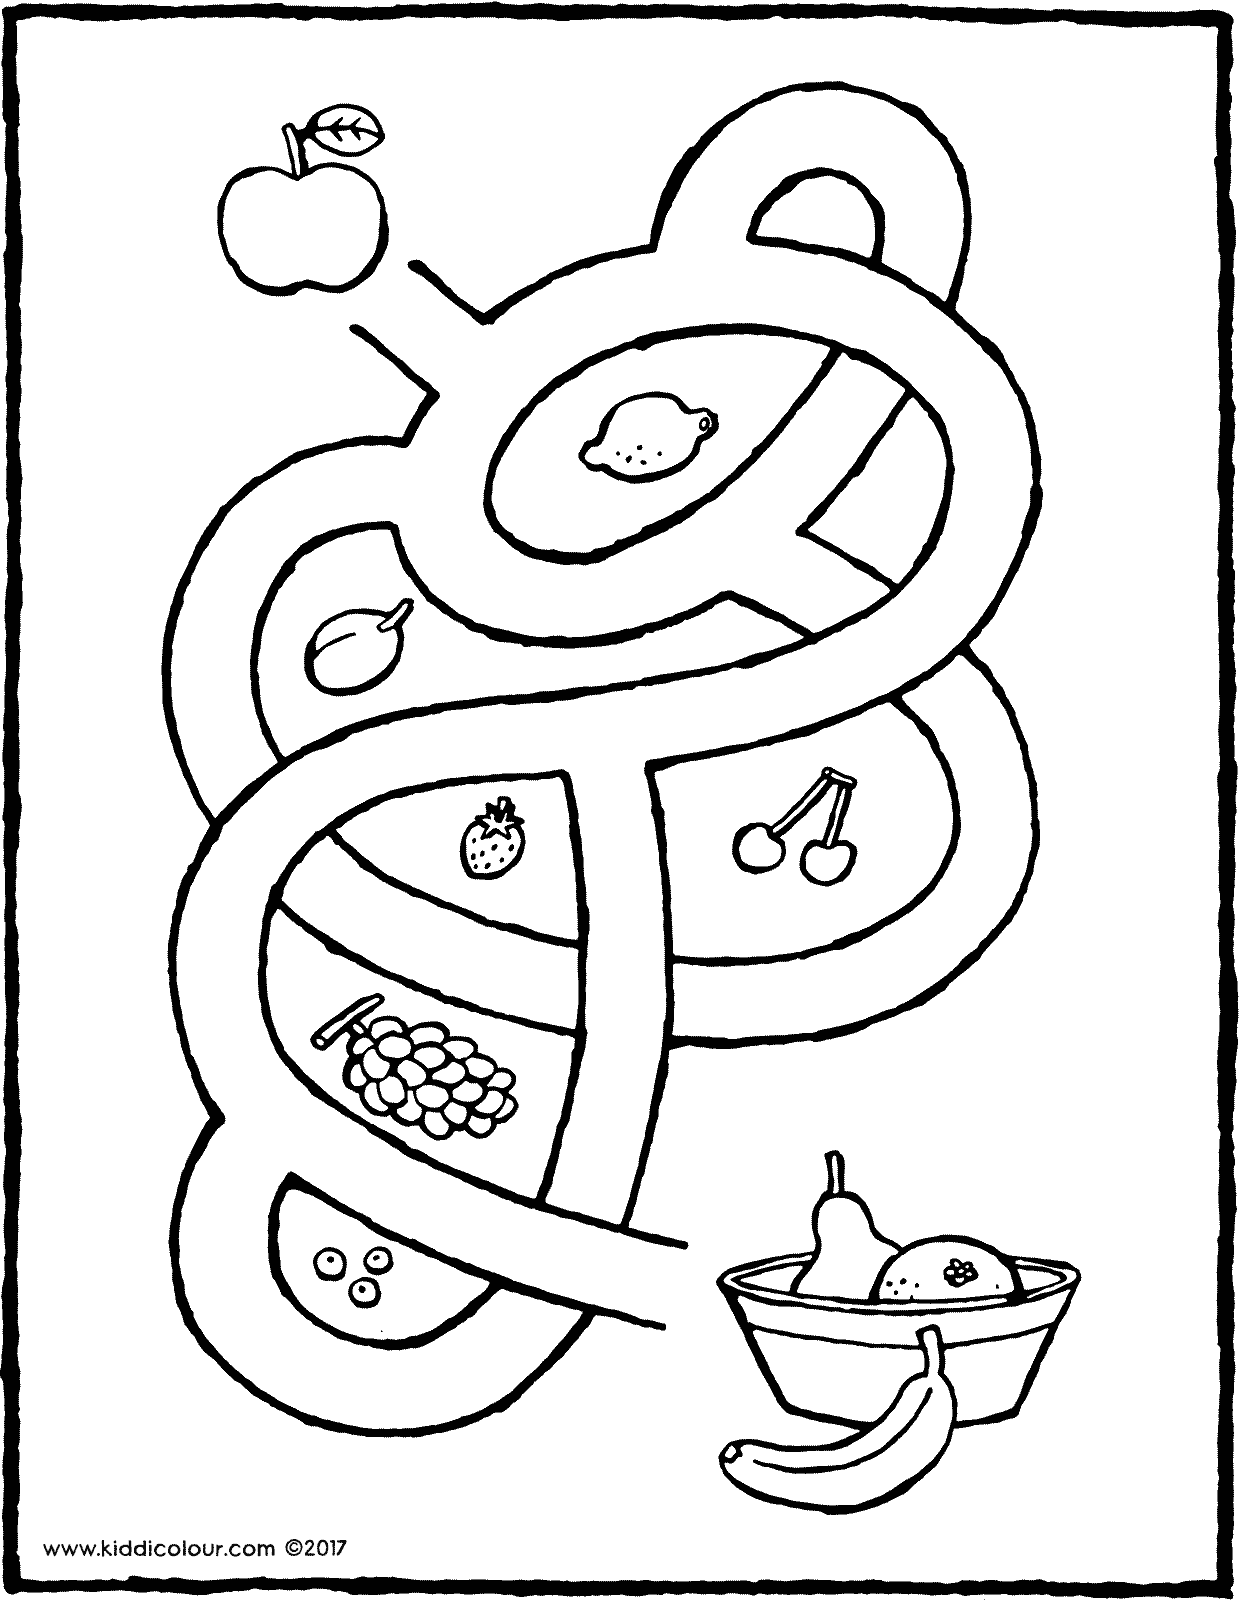 maze with fruit colouring page drawing picture 01V